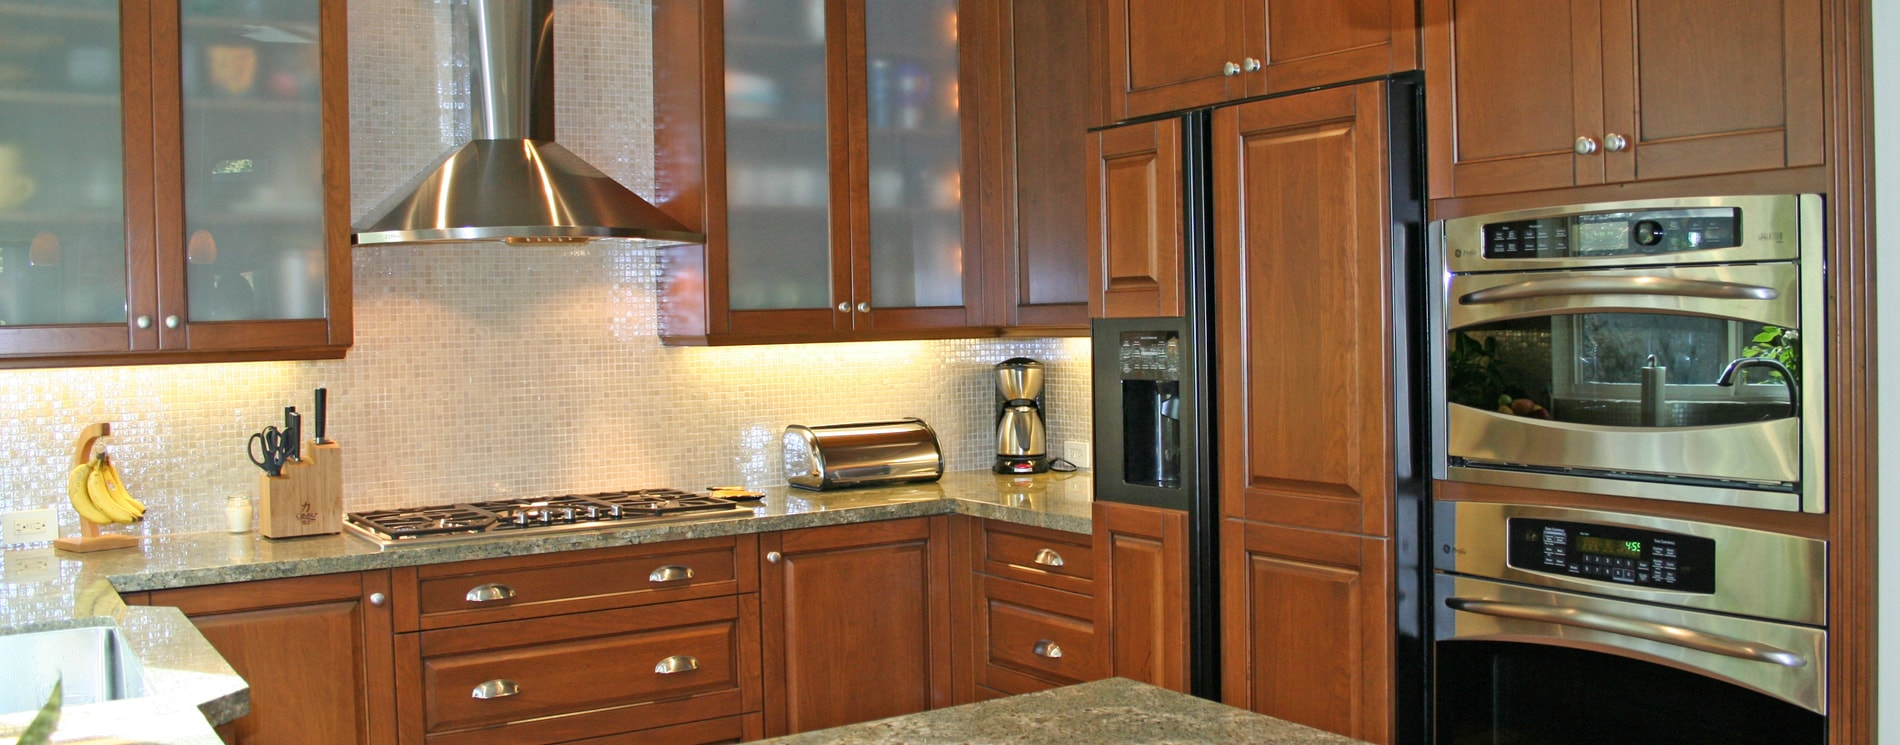 kitchen cabinet with wood cabinets